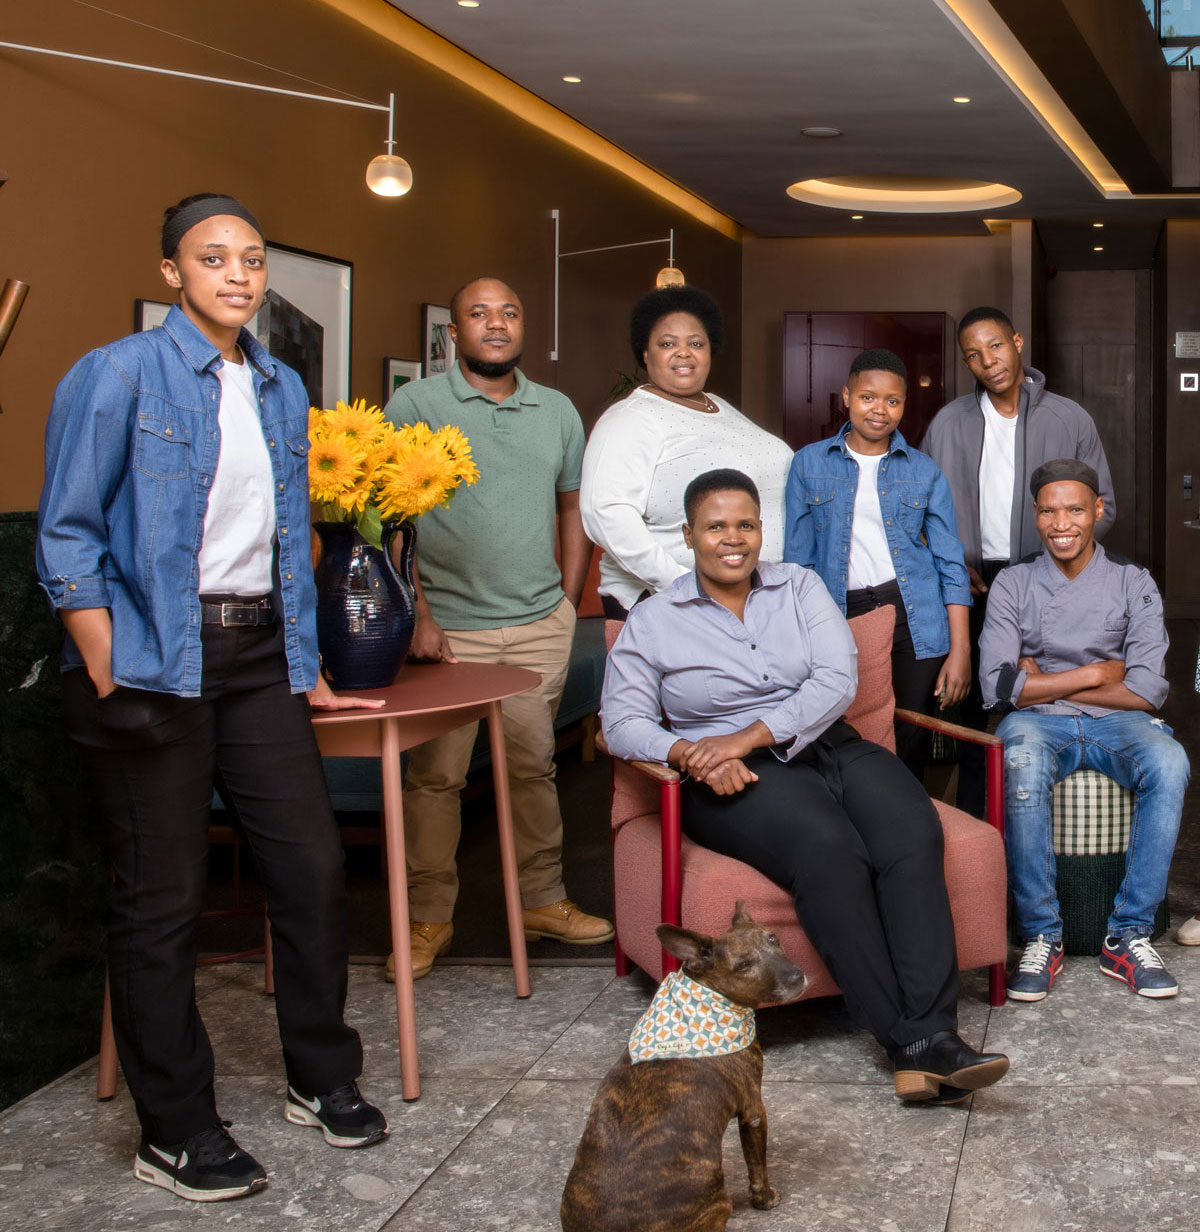 Home Suite Hotels Family Crew Staff Hospitality Welcome Home